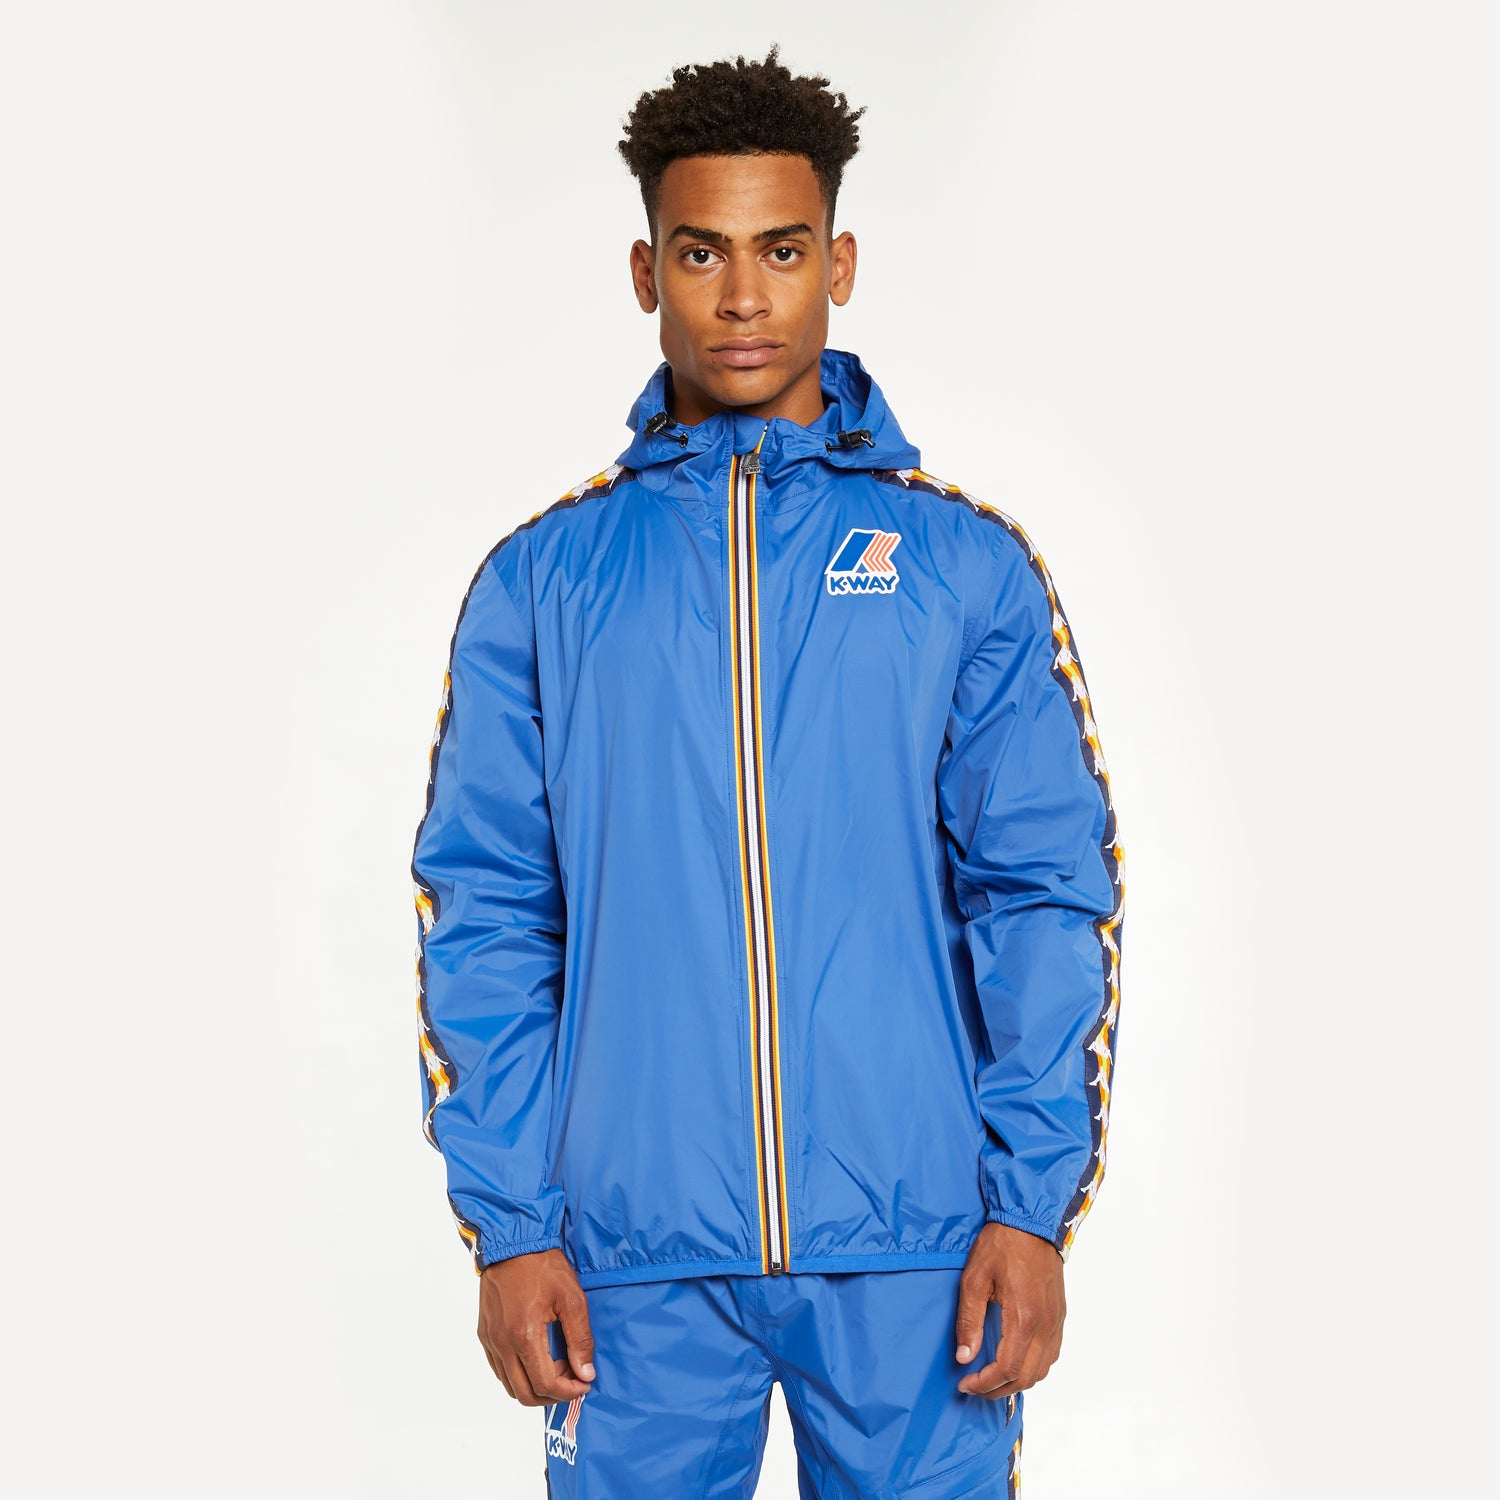 Men's K-Way X Kappa Le Vrai 3.0 Claude Banda Blue Royal